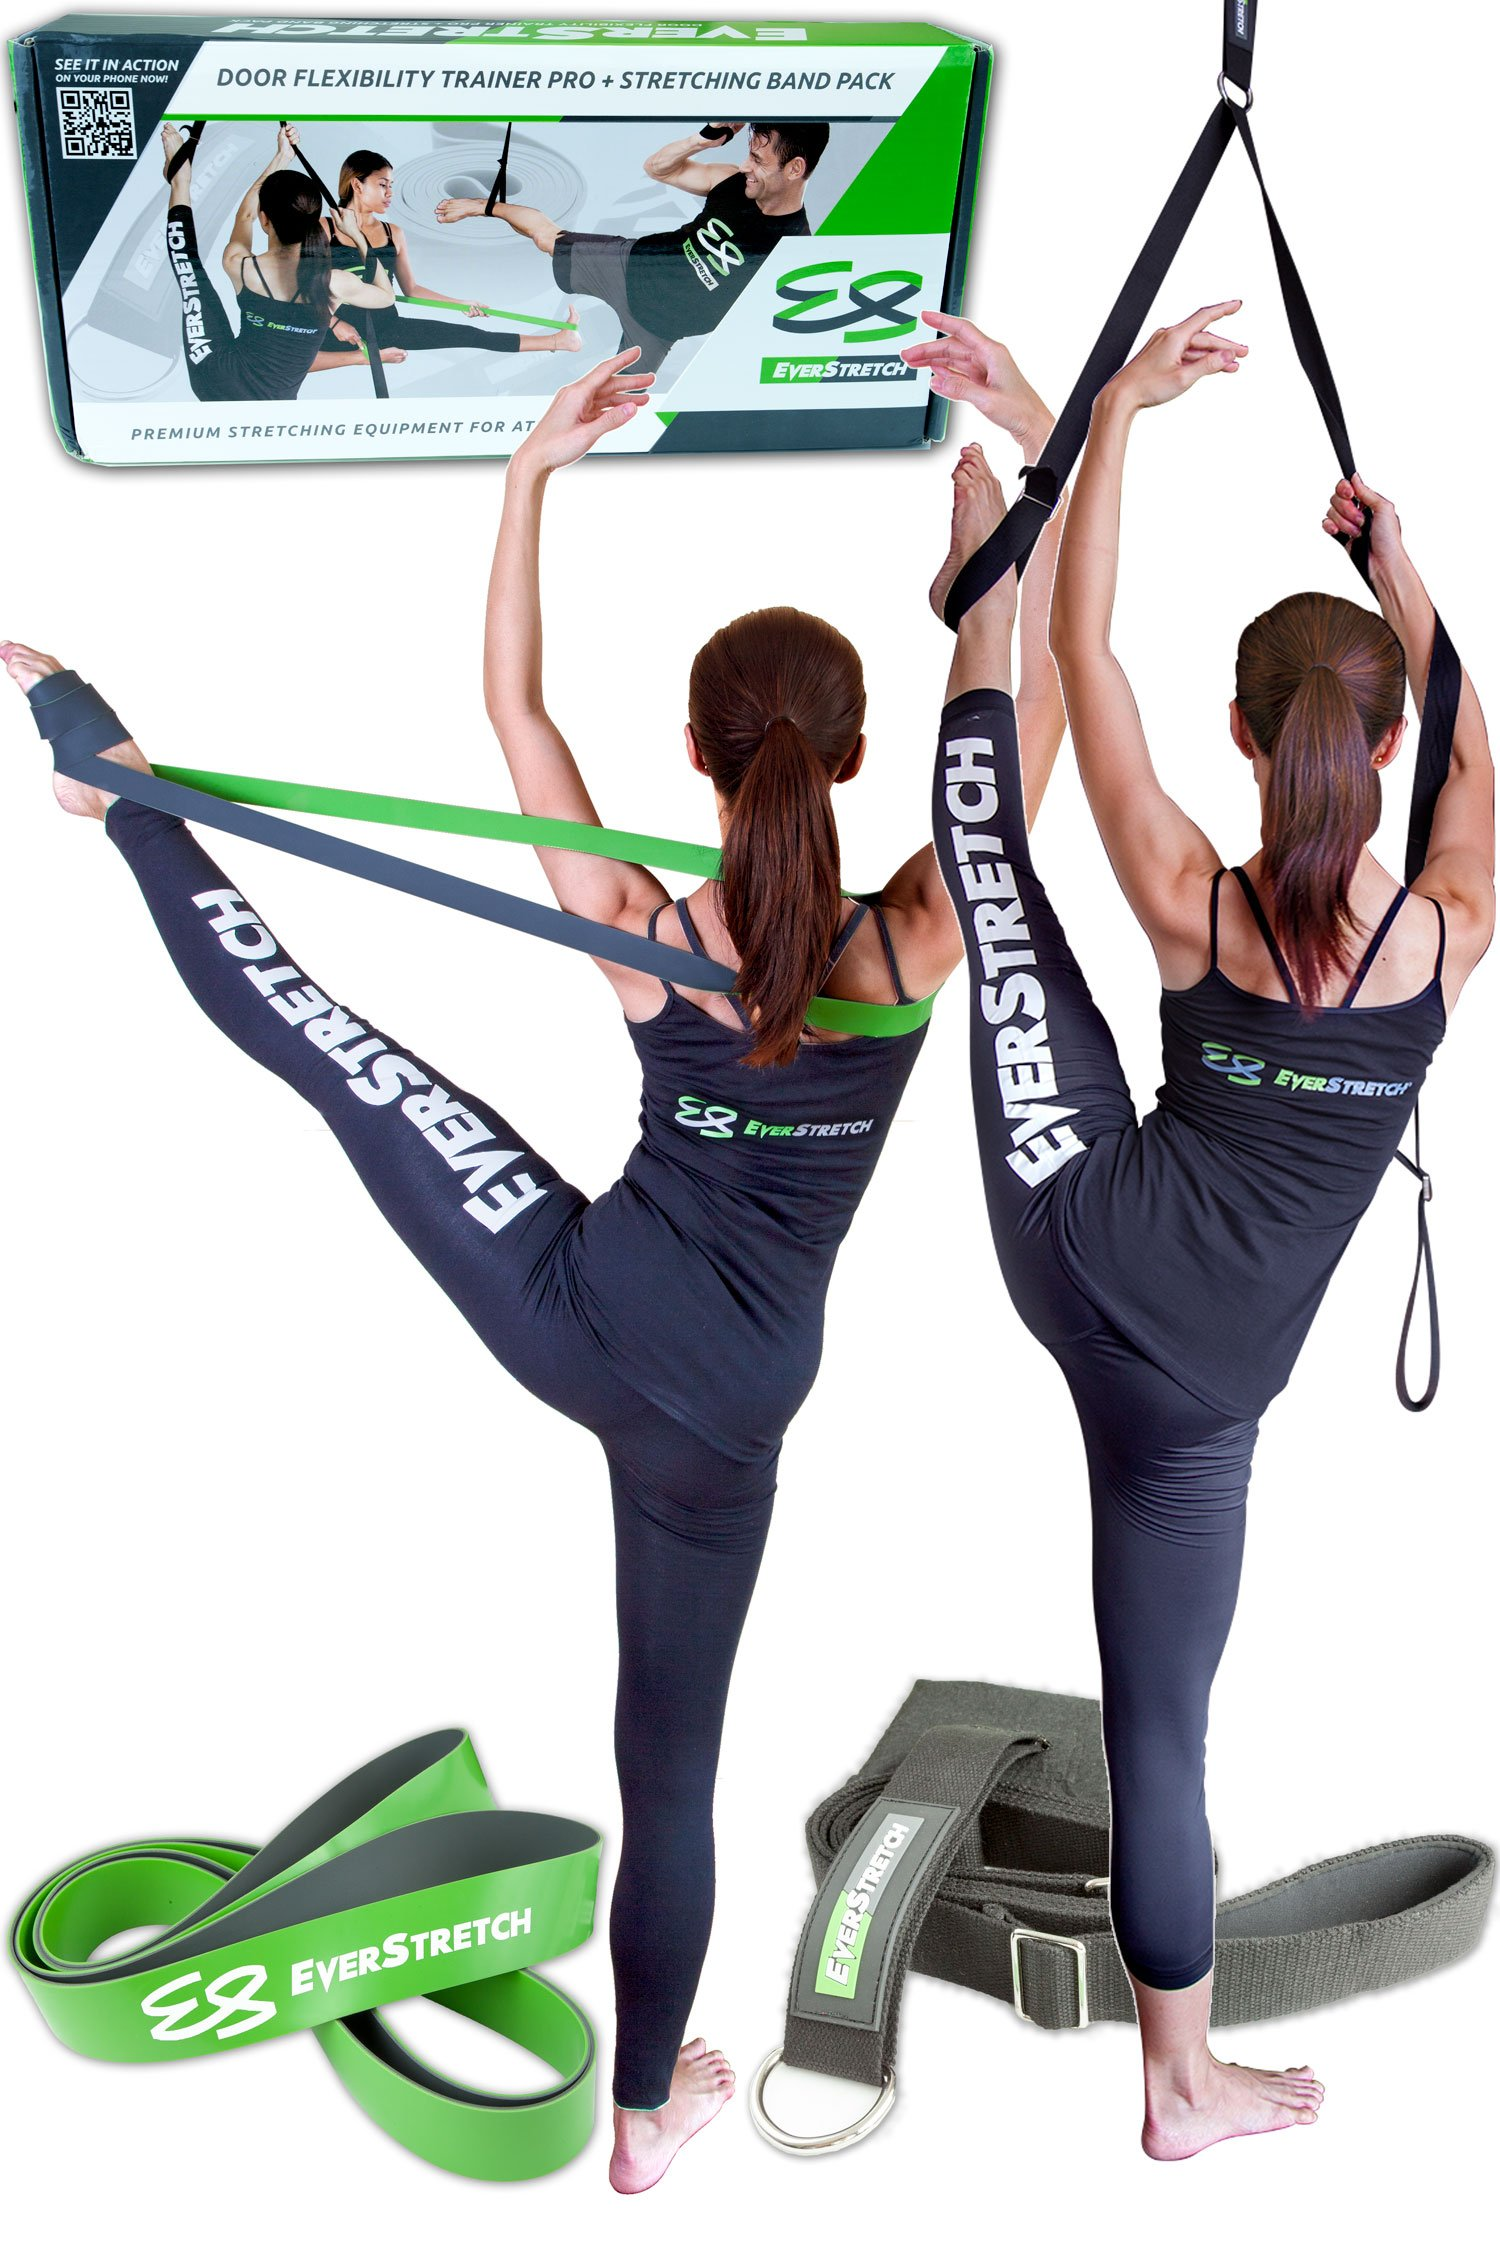 Dance Stretcher Gift Pack: Door Flexibility Trainer PRO + Stretching Band by EverStretch: Premium Stretching Equipment for Ballet and Dance. Our best Leg Stretcher and Ballet Stretch Band in giftbox. by EverStretch